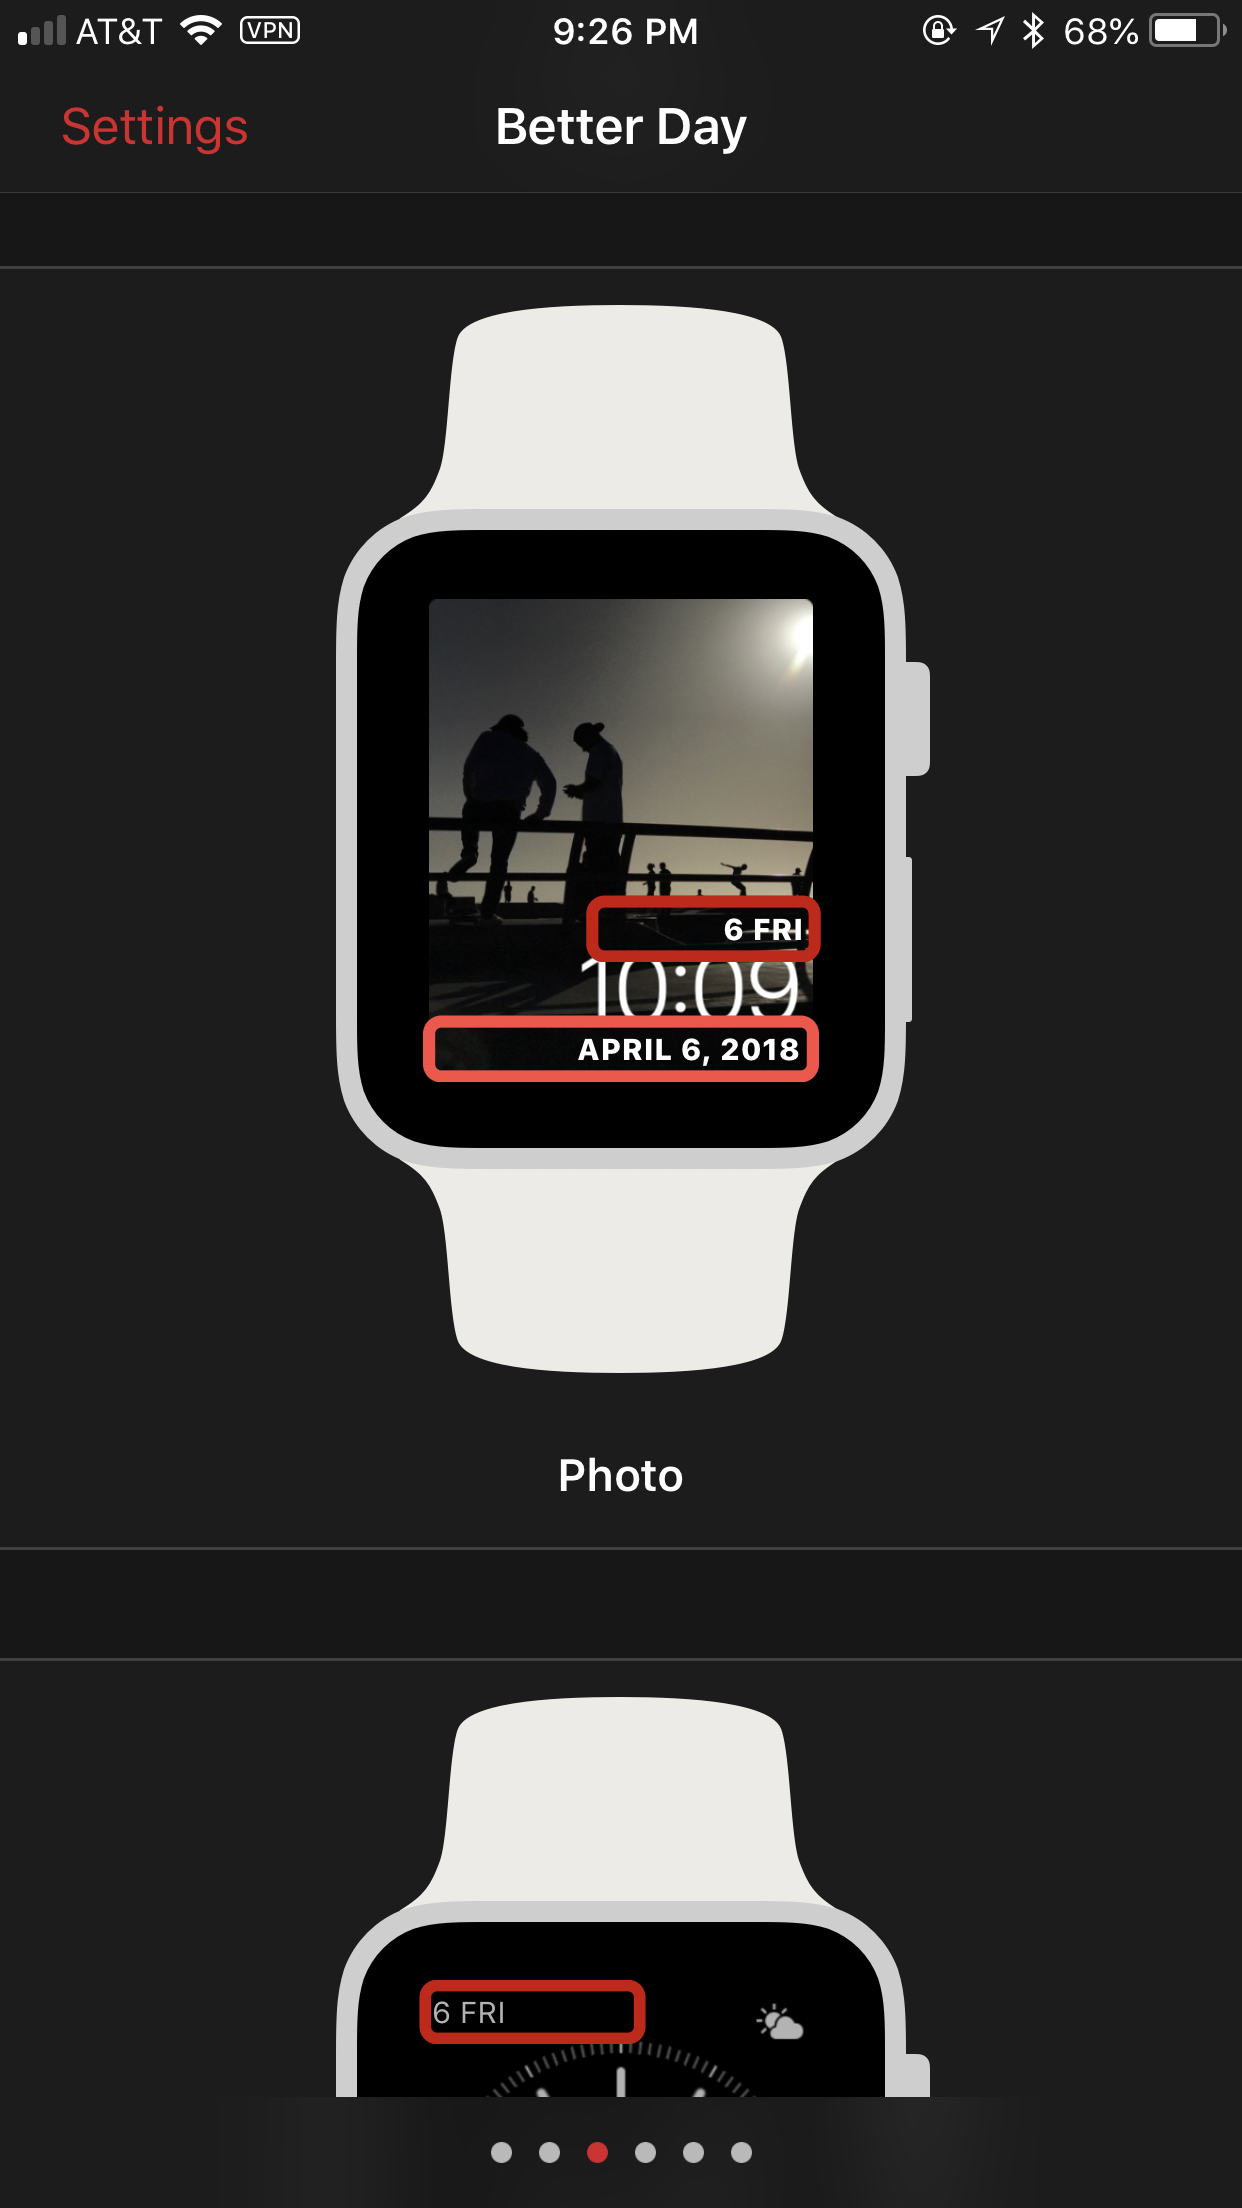 screenshot: the configurator displaying the photo watch face with Better Day in both the slot above and below the time. At bottom, the simple watch face is also visible showing Better Day in one of the corners.